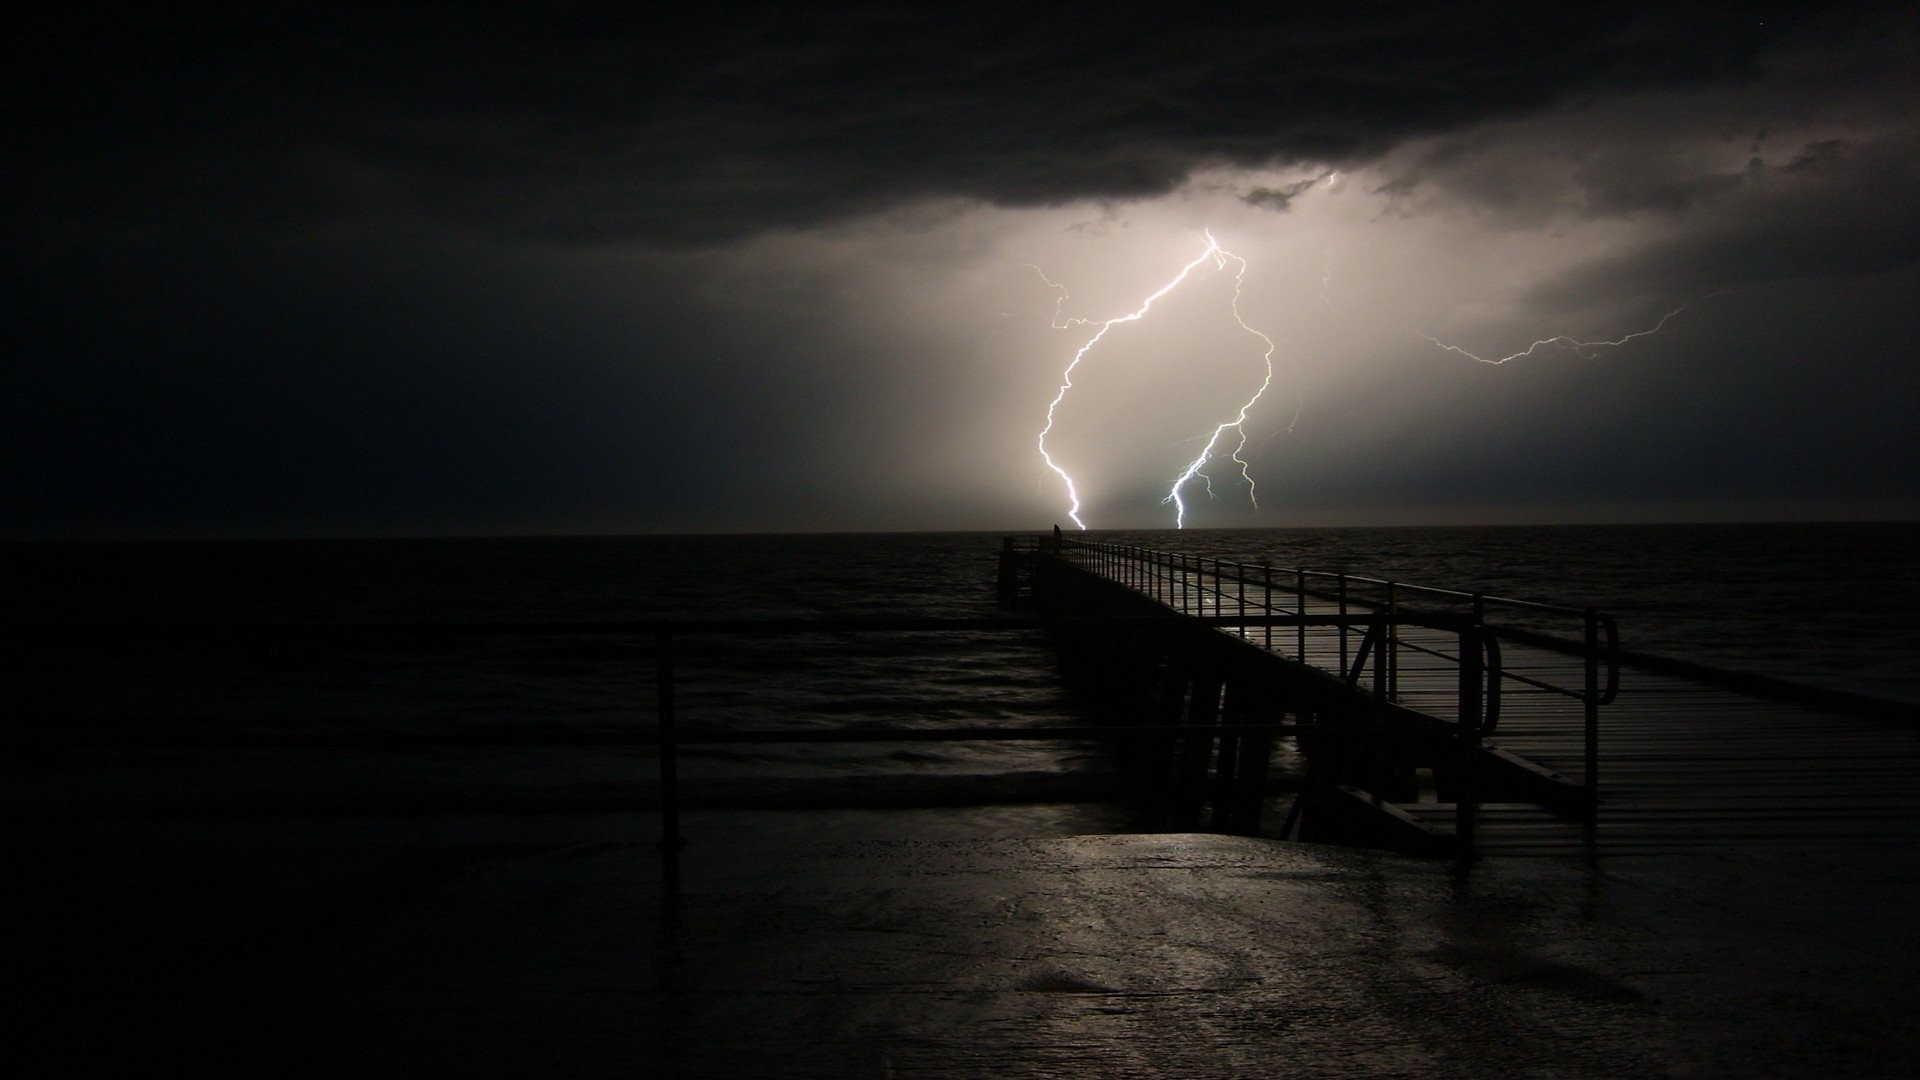 A storm approaching a pier with lightning in the distance.